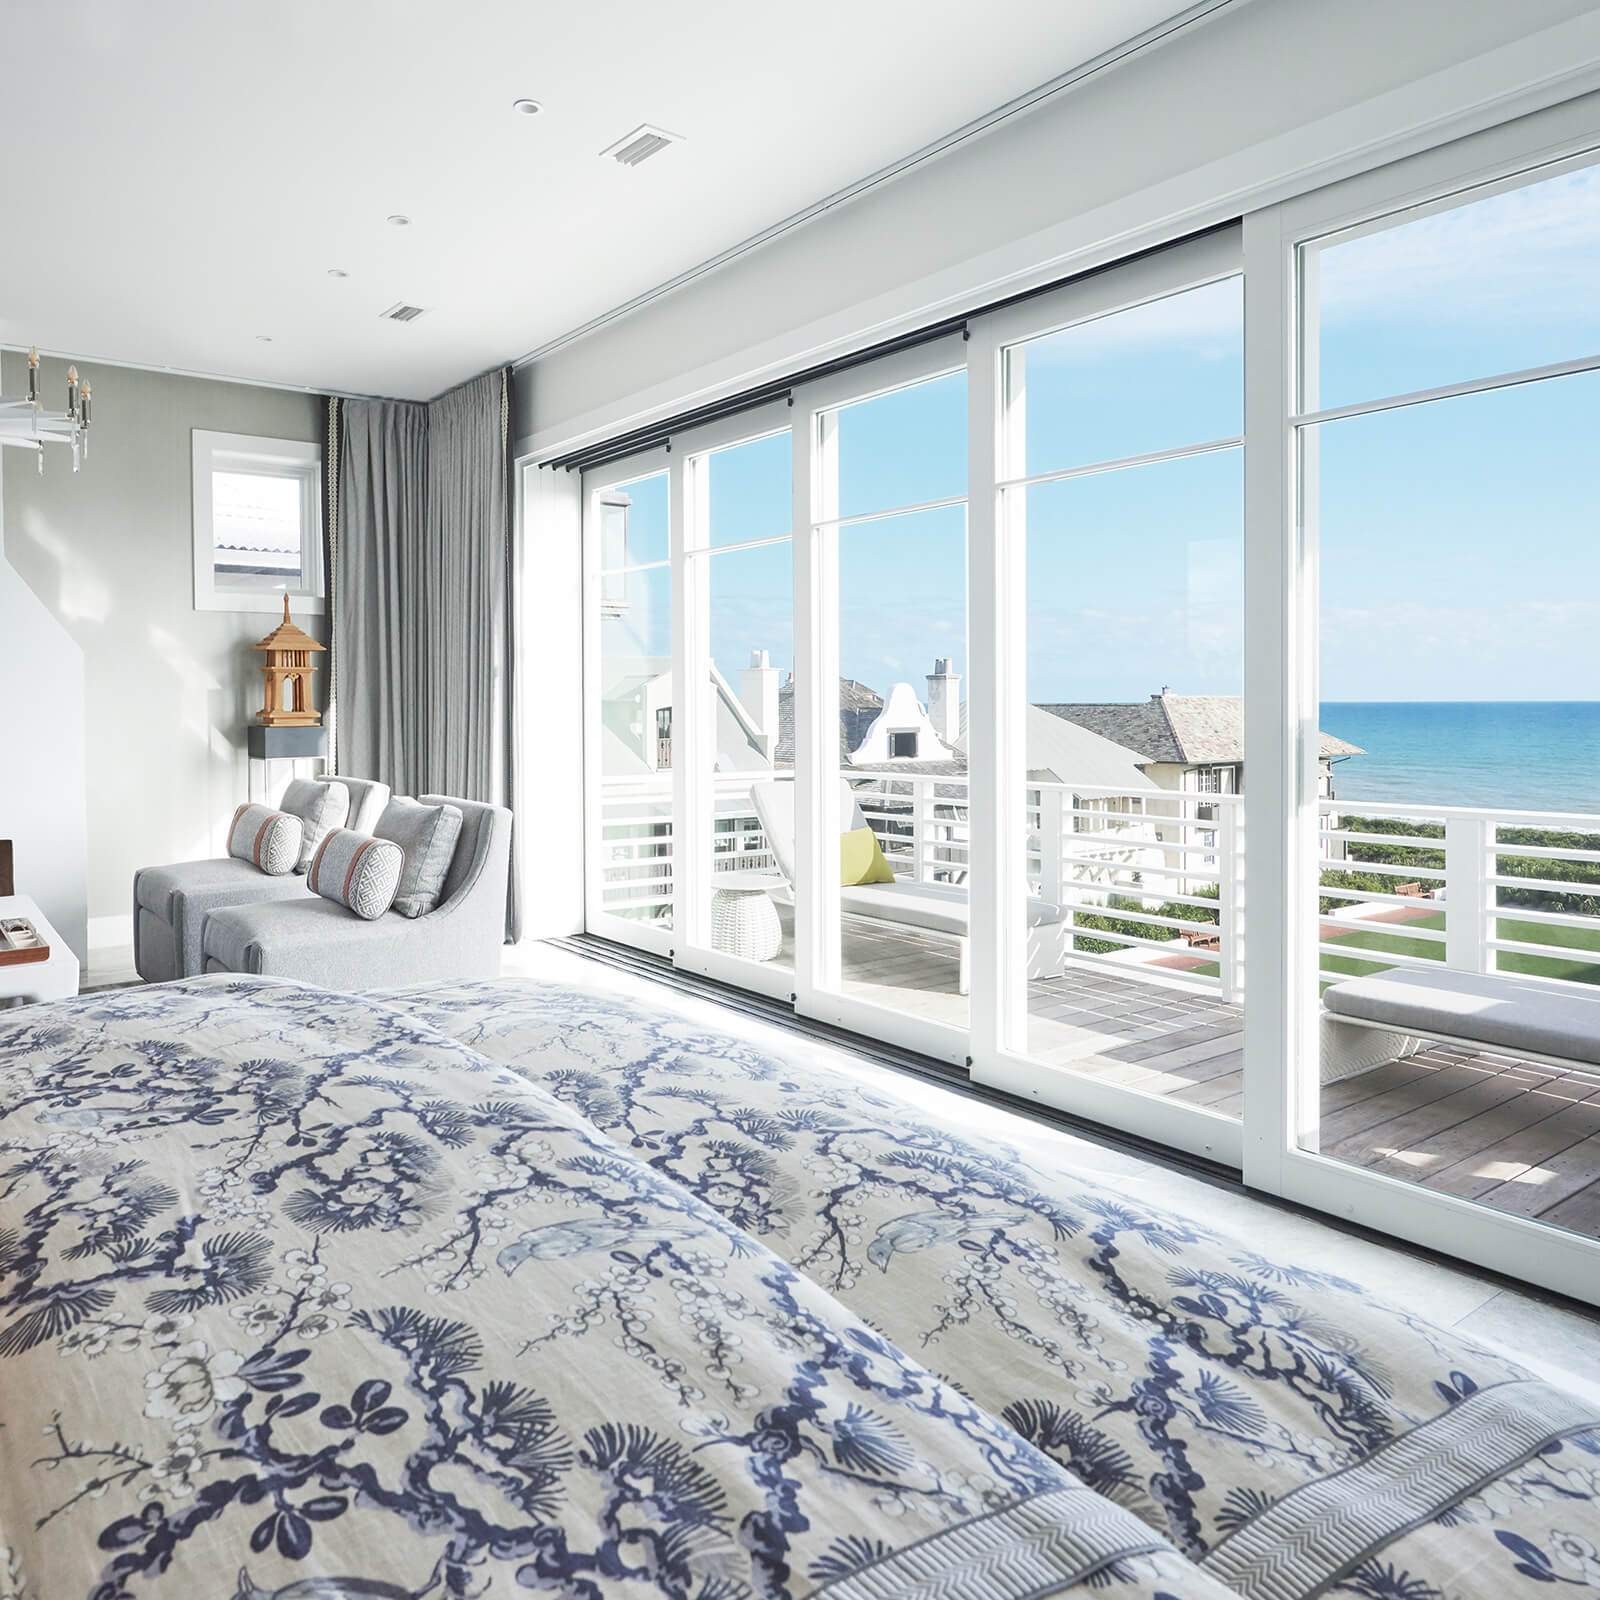 A bedroom with a deck and multi-slide doors overlooking the ocean in Vern Yip's Rosemary Beach home.